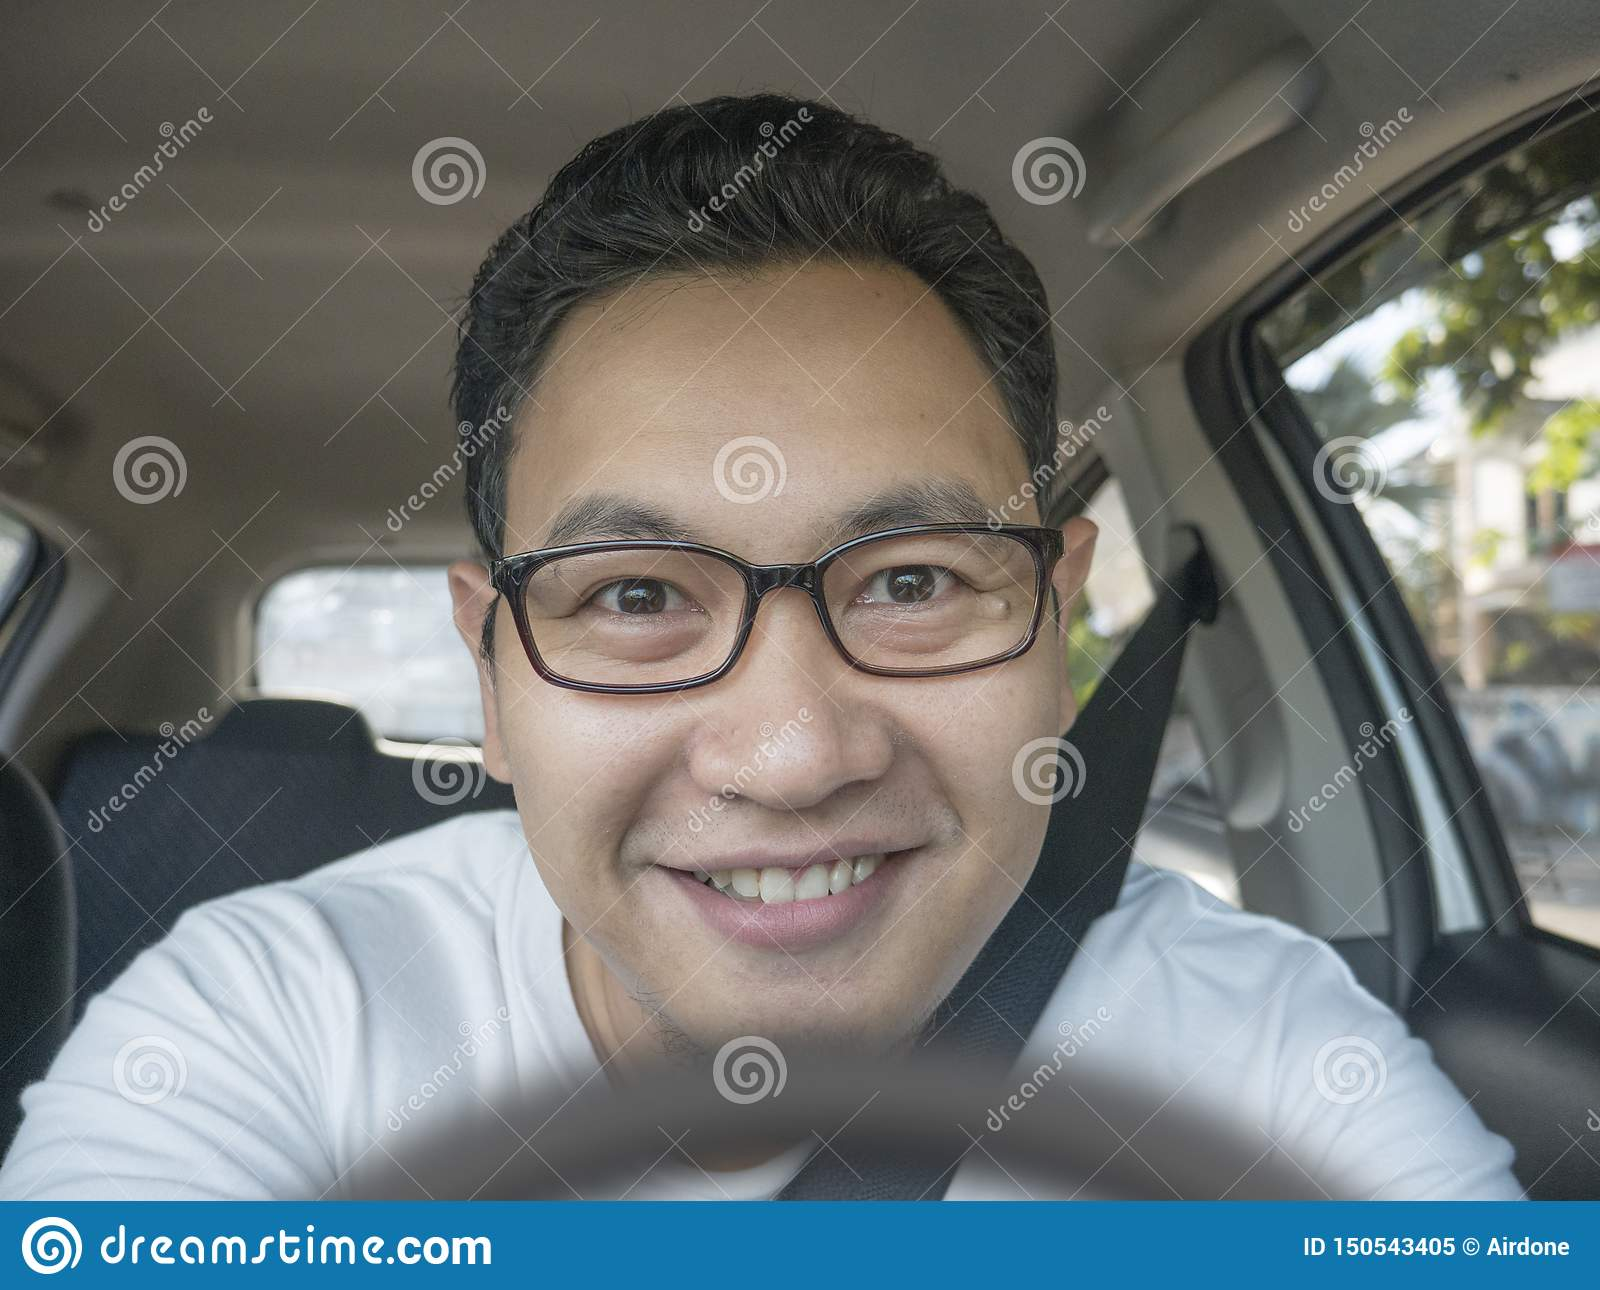 Smiling Happy Male Driver